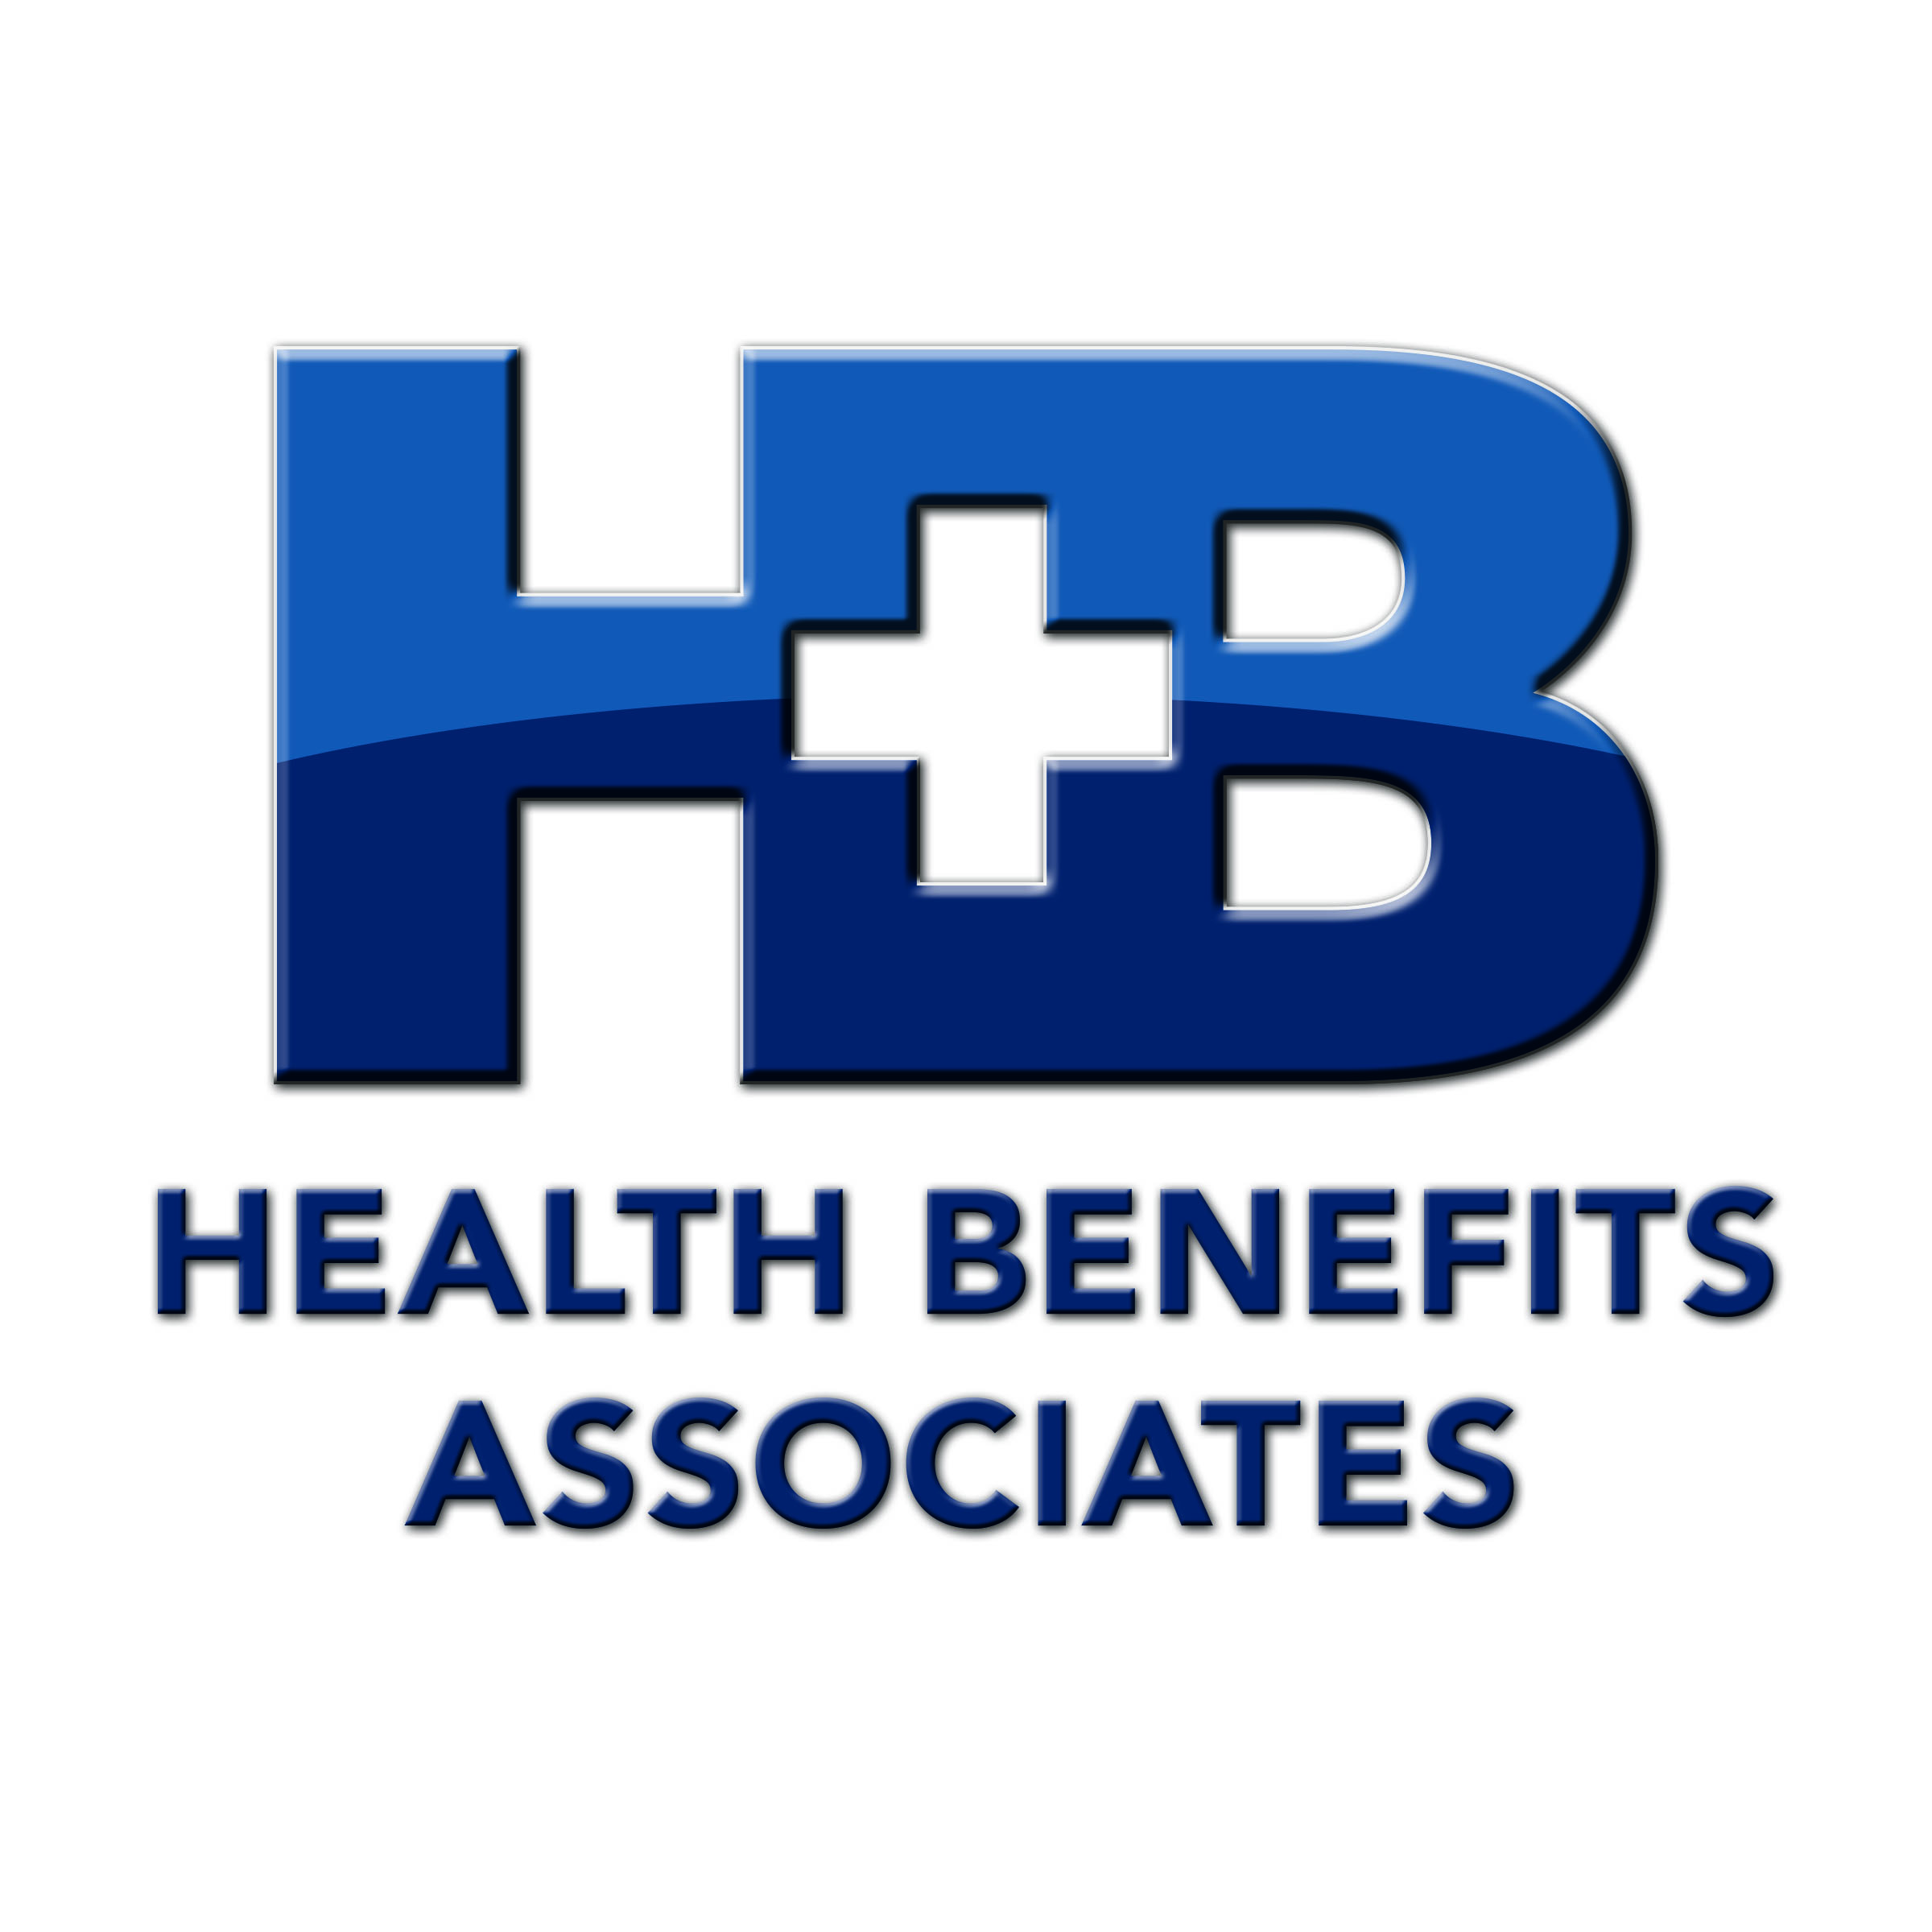 Health Benefits Associates - The employee benefits broker and group health insurance advisor in Reno